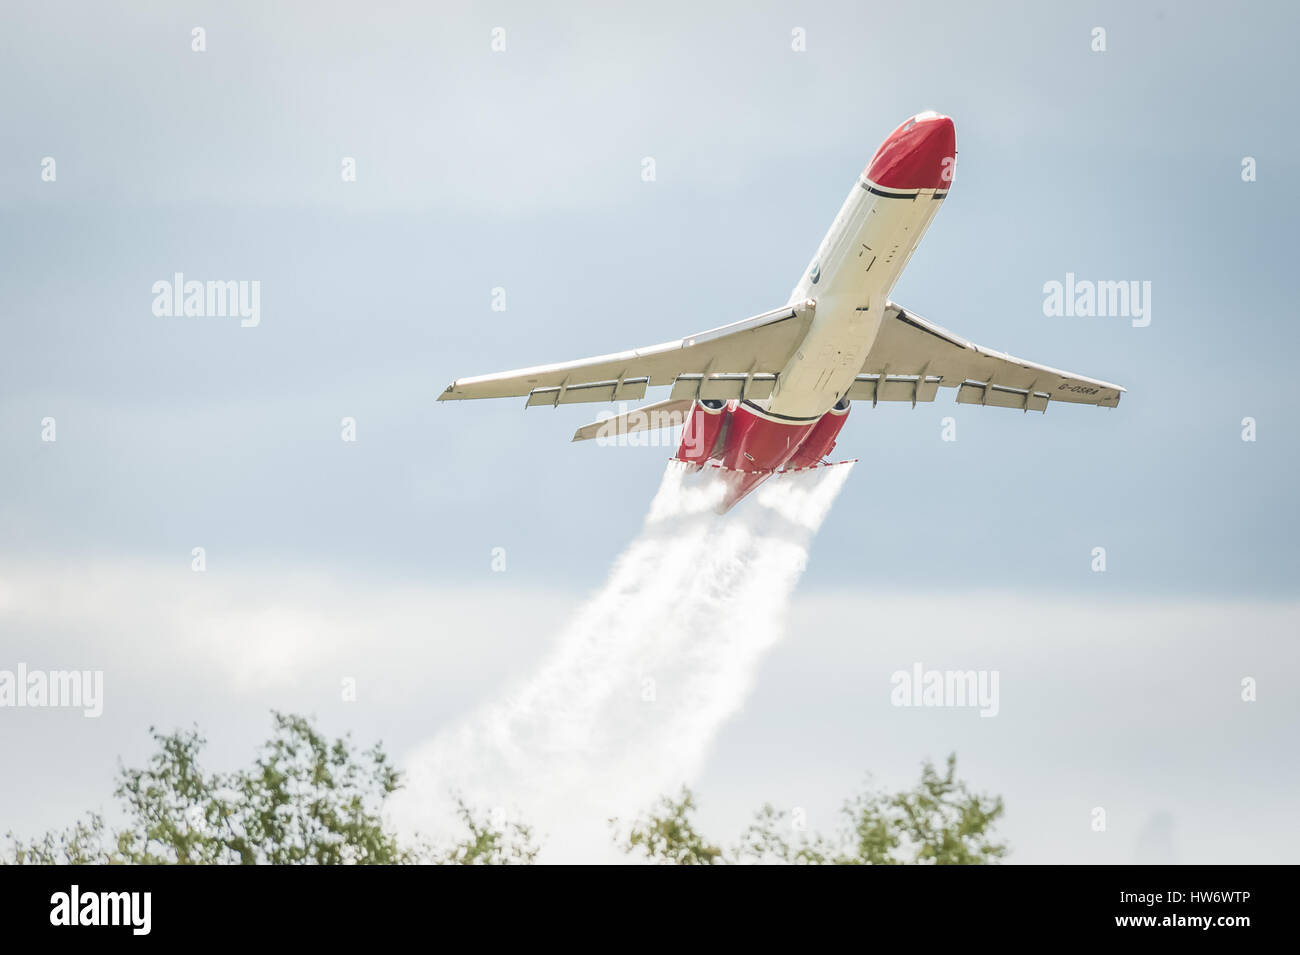 Low-level demonstration of a Boeing 727 oil spill response aircraft operated by OSRL at an aviation trade event. - Stock Image